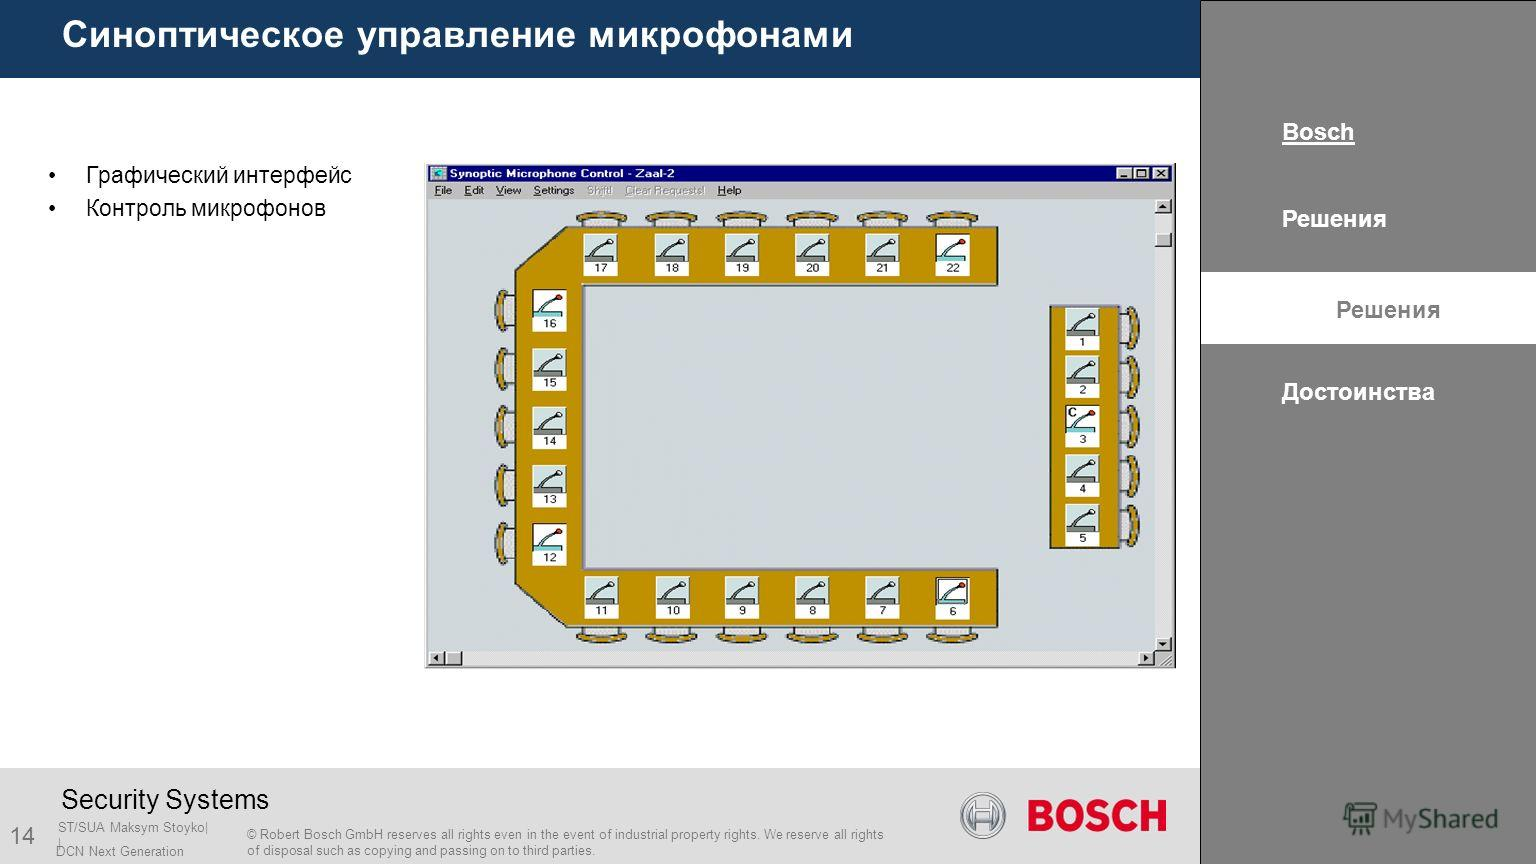 Bosch Решения Уникальность Достоинства ST/SUA Maksym Stoyko| | Security Systems © Robert Bosch GmbH reserves all rights even in the event of industrial property rights. We reserve all rights of disposal such as copying and passing on to third parties